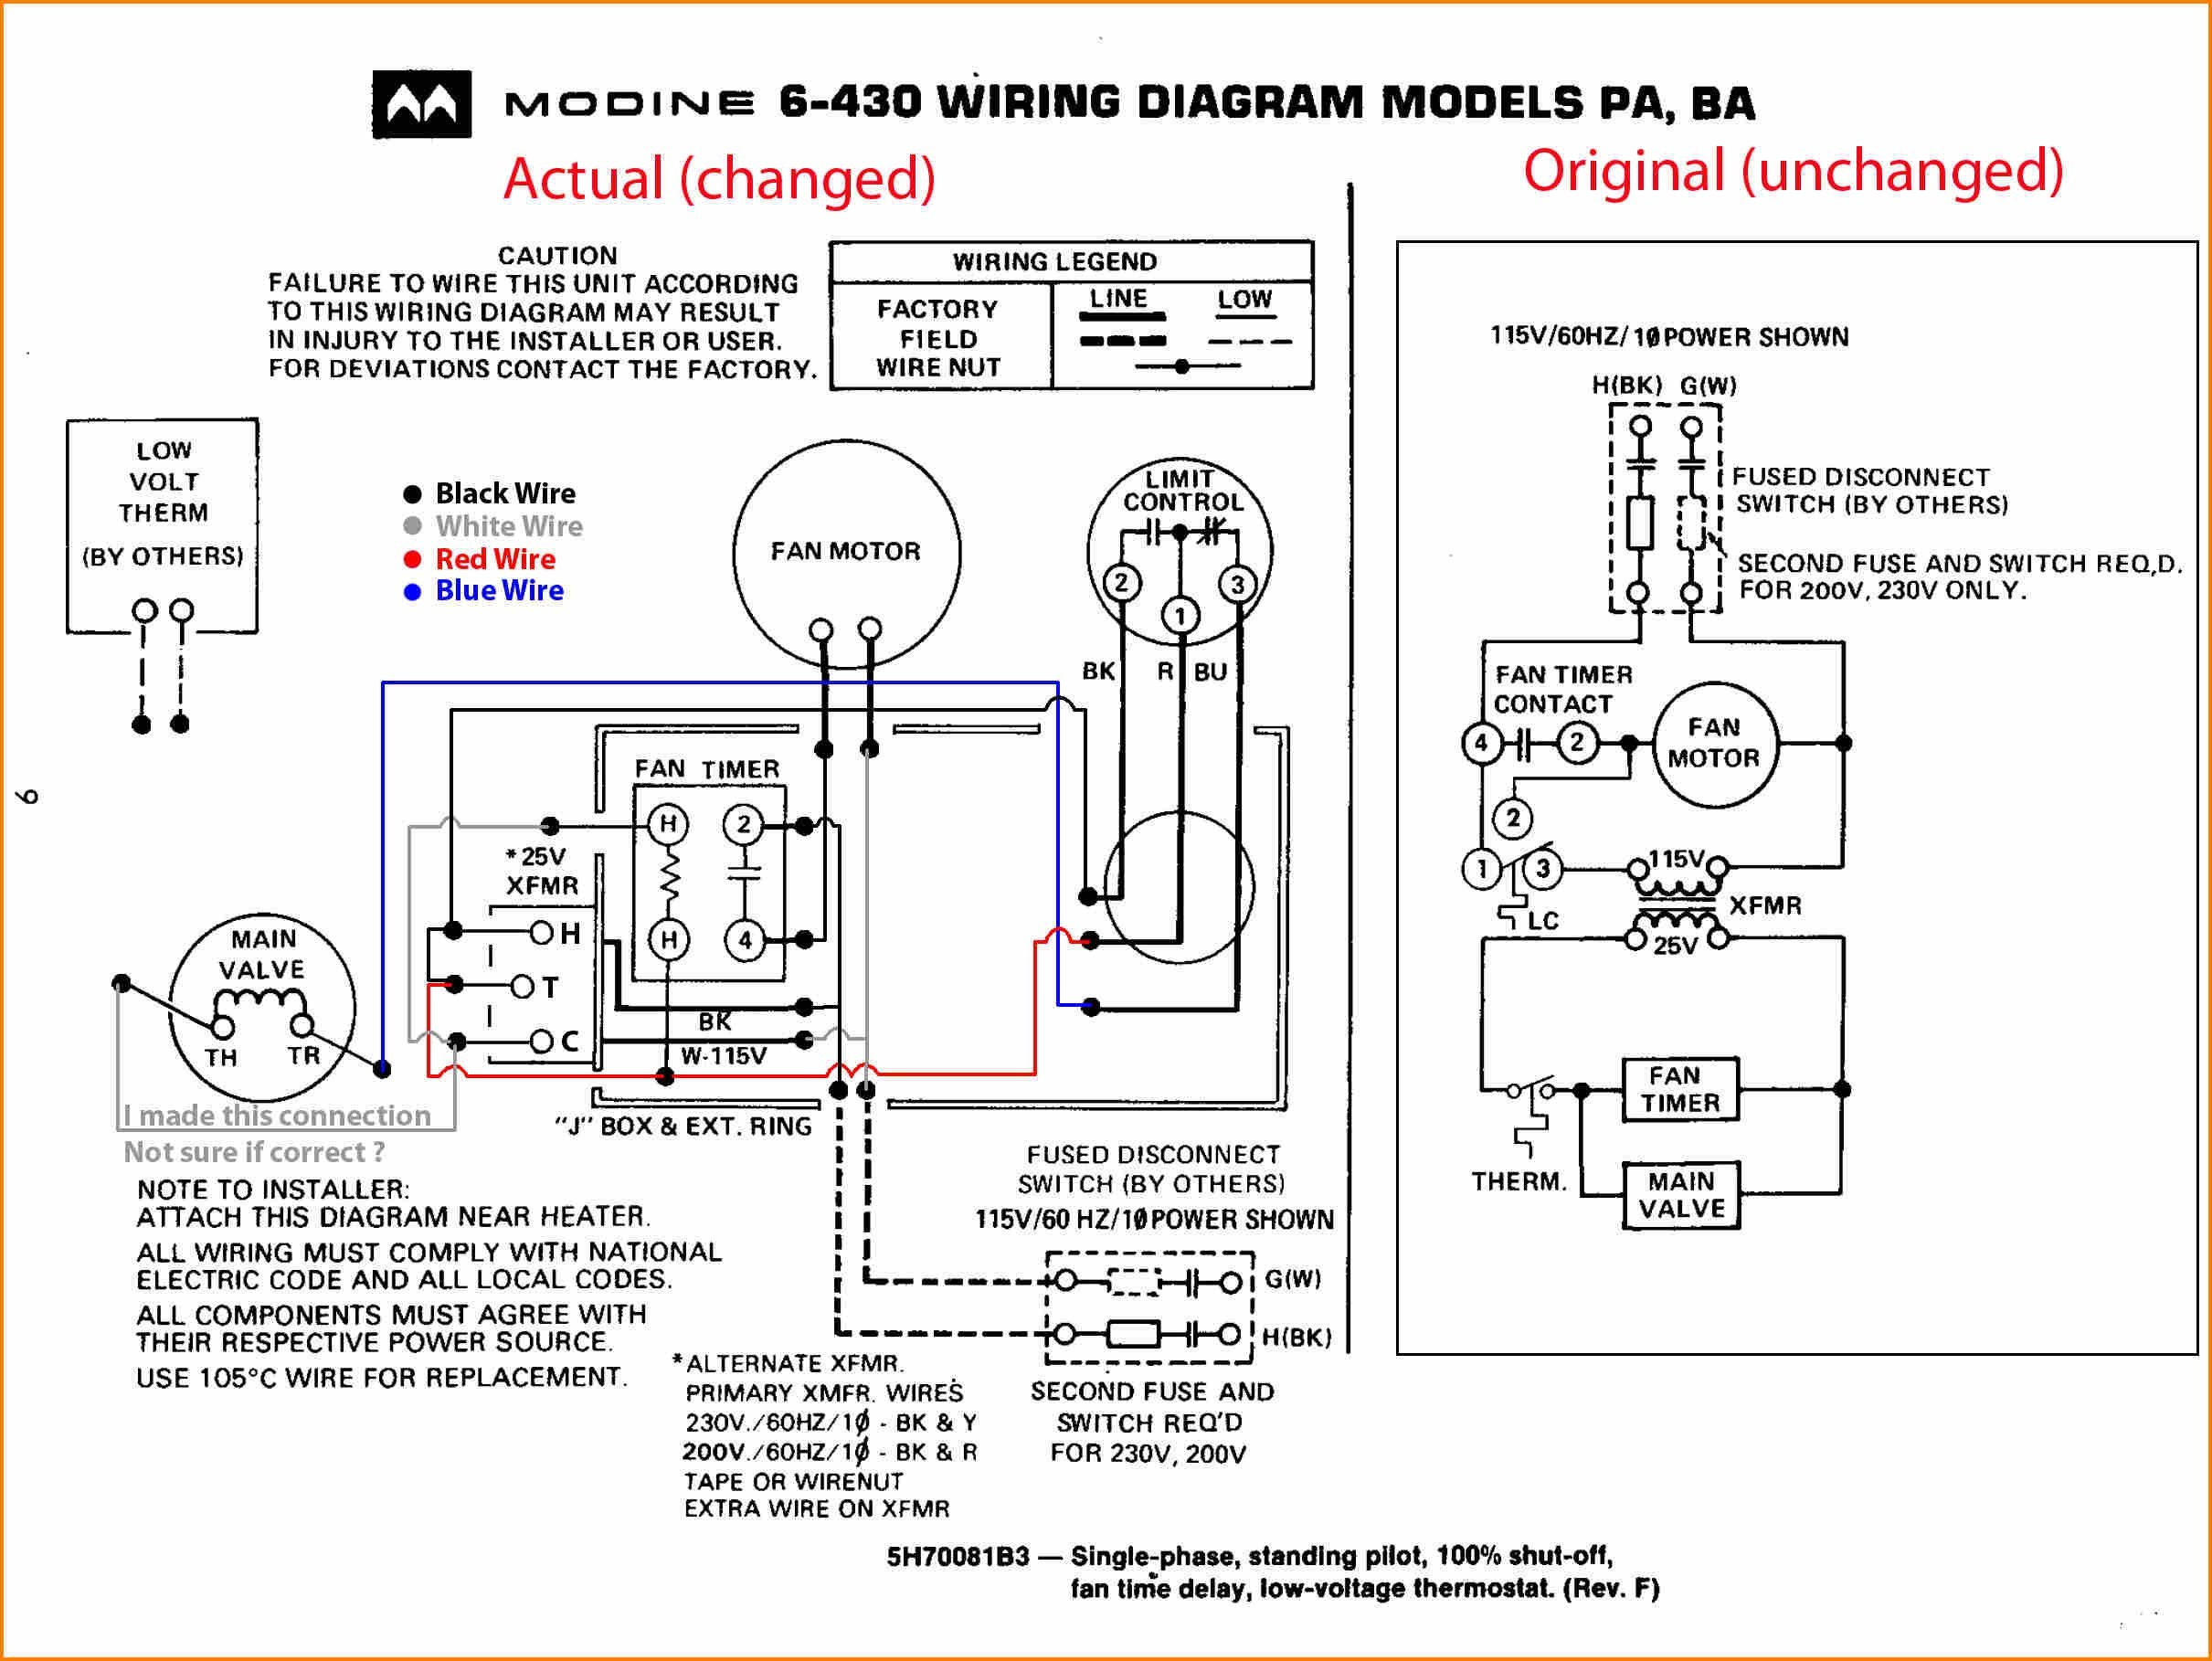 Beautiful Ge Rr7 Wiring Diagram Photos Everything You Need To Know - Electric Motor Wiring Diagram